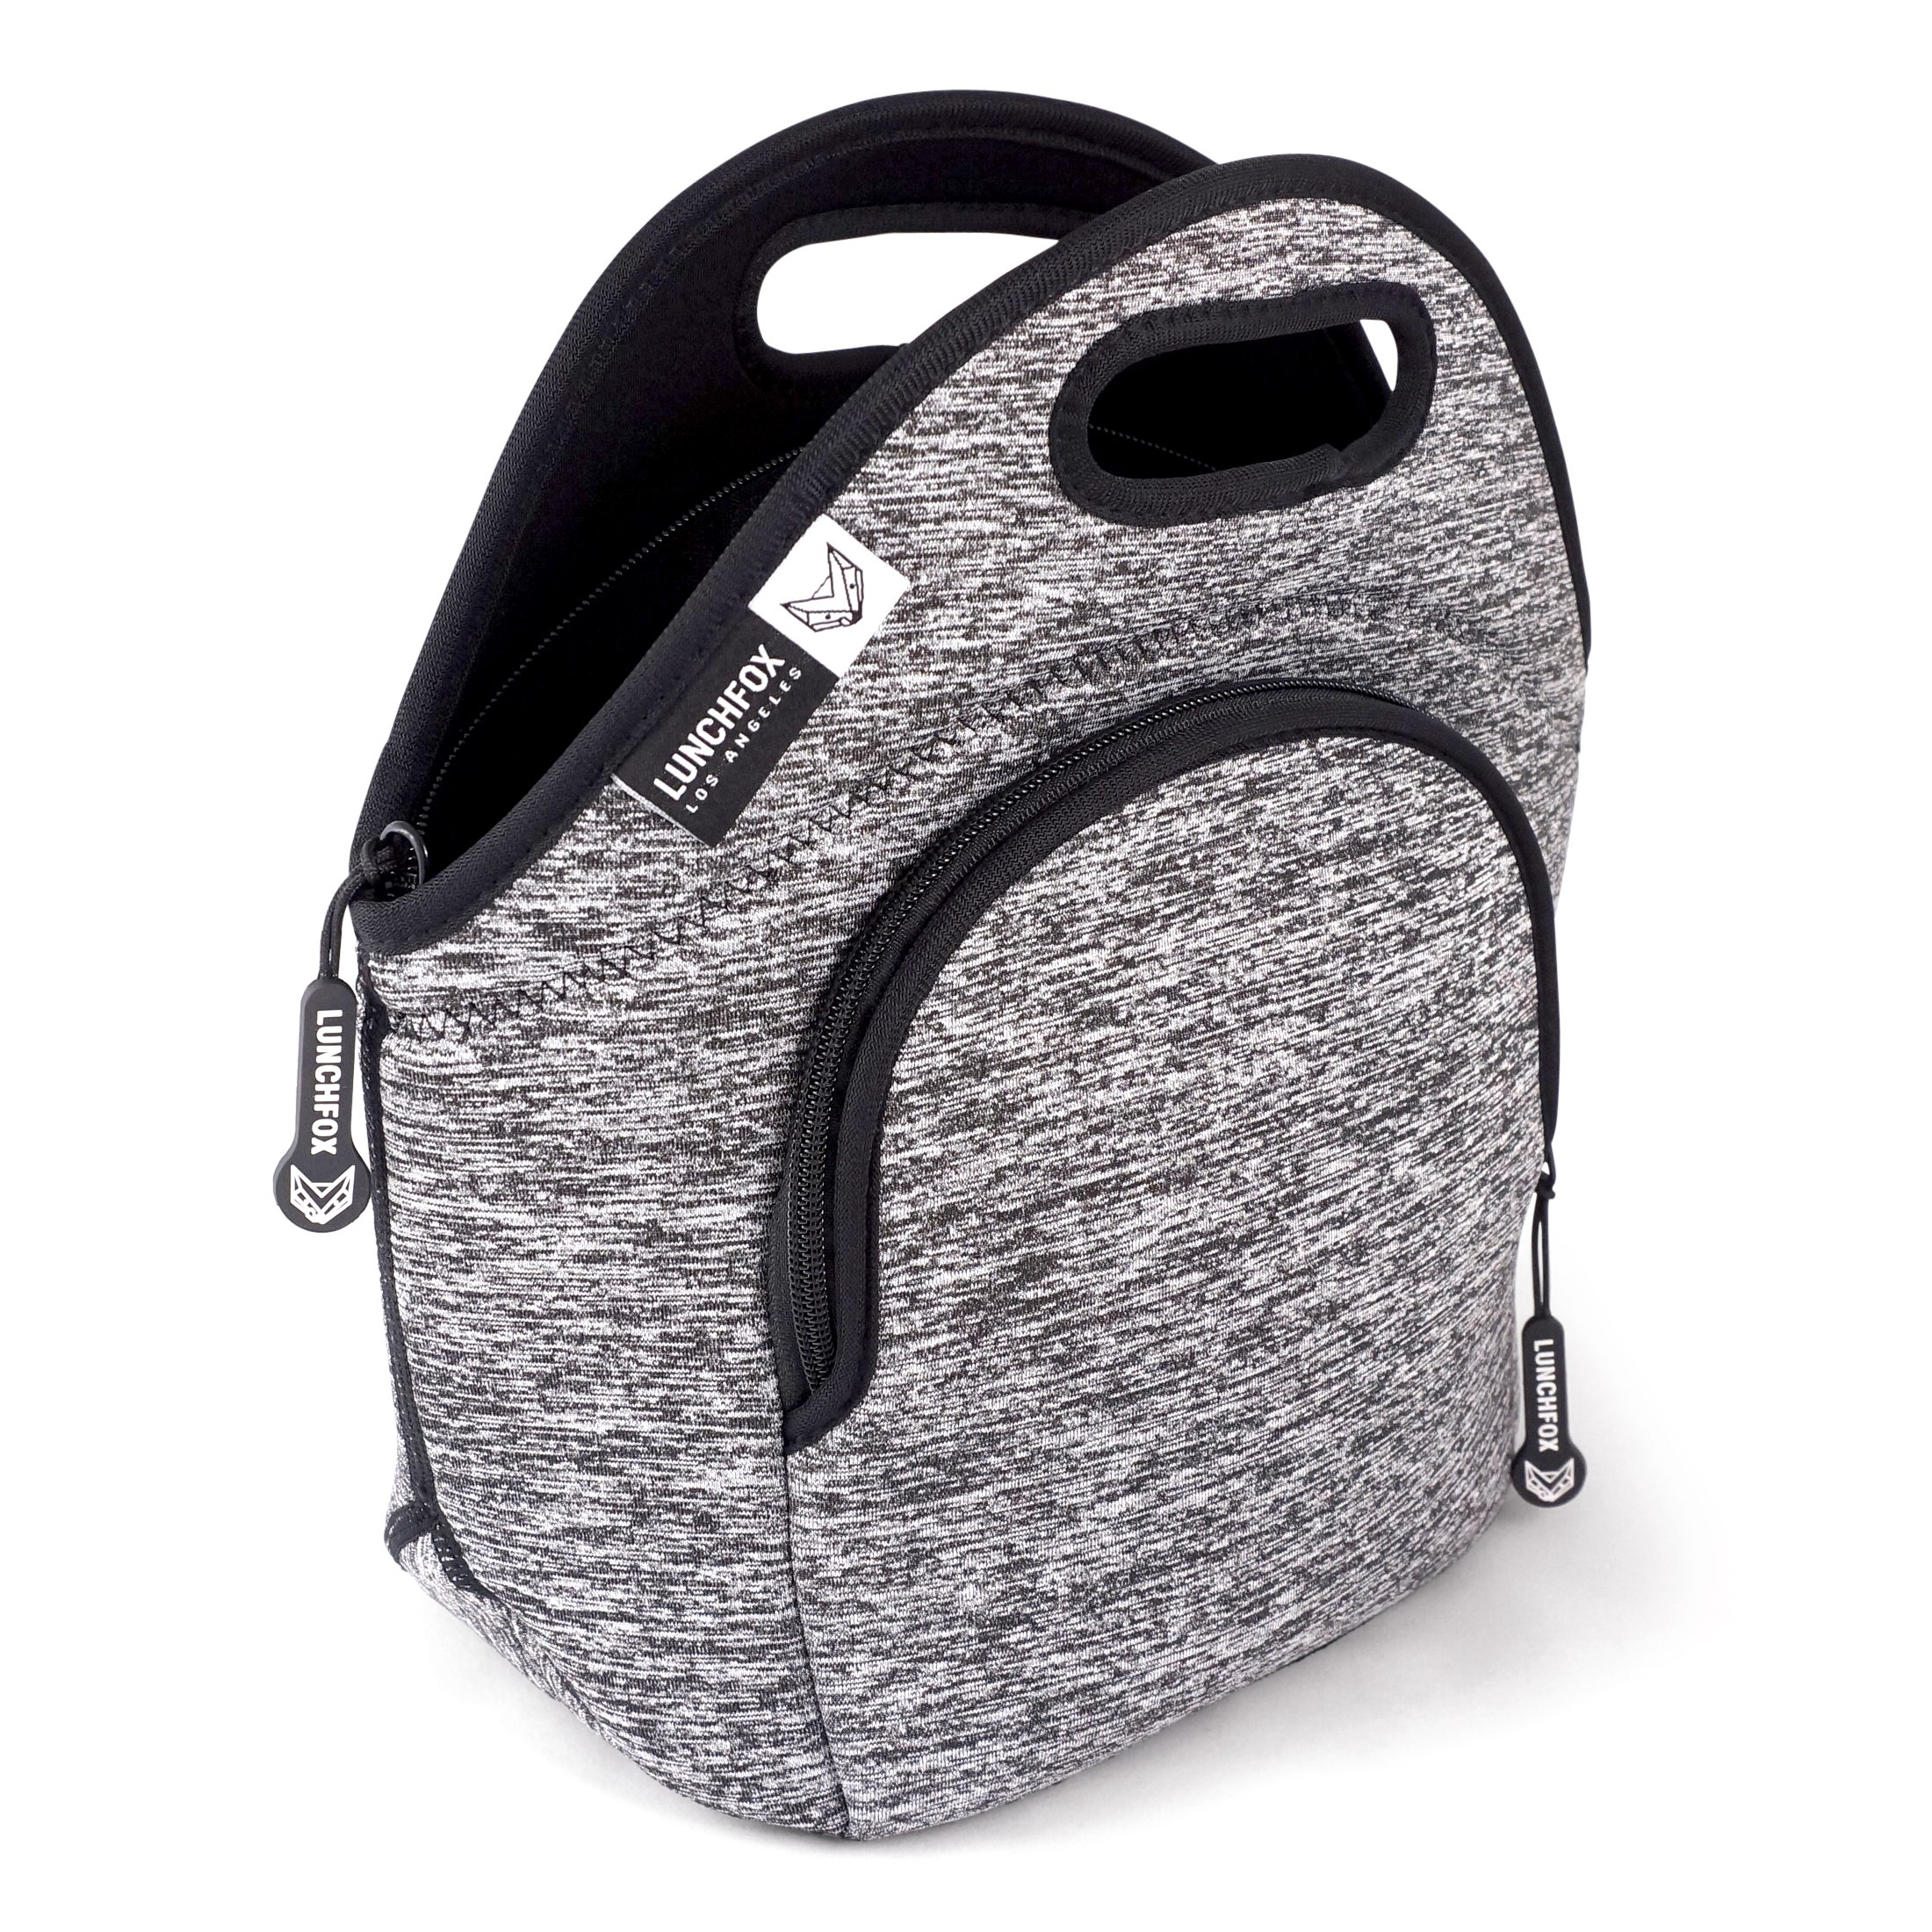 LunchFox Eco-Friendly Neoprene Lunch Bag (The Original), Heather Grey Melange, Ultra-Thick Insulated - The Silver Lake